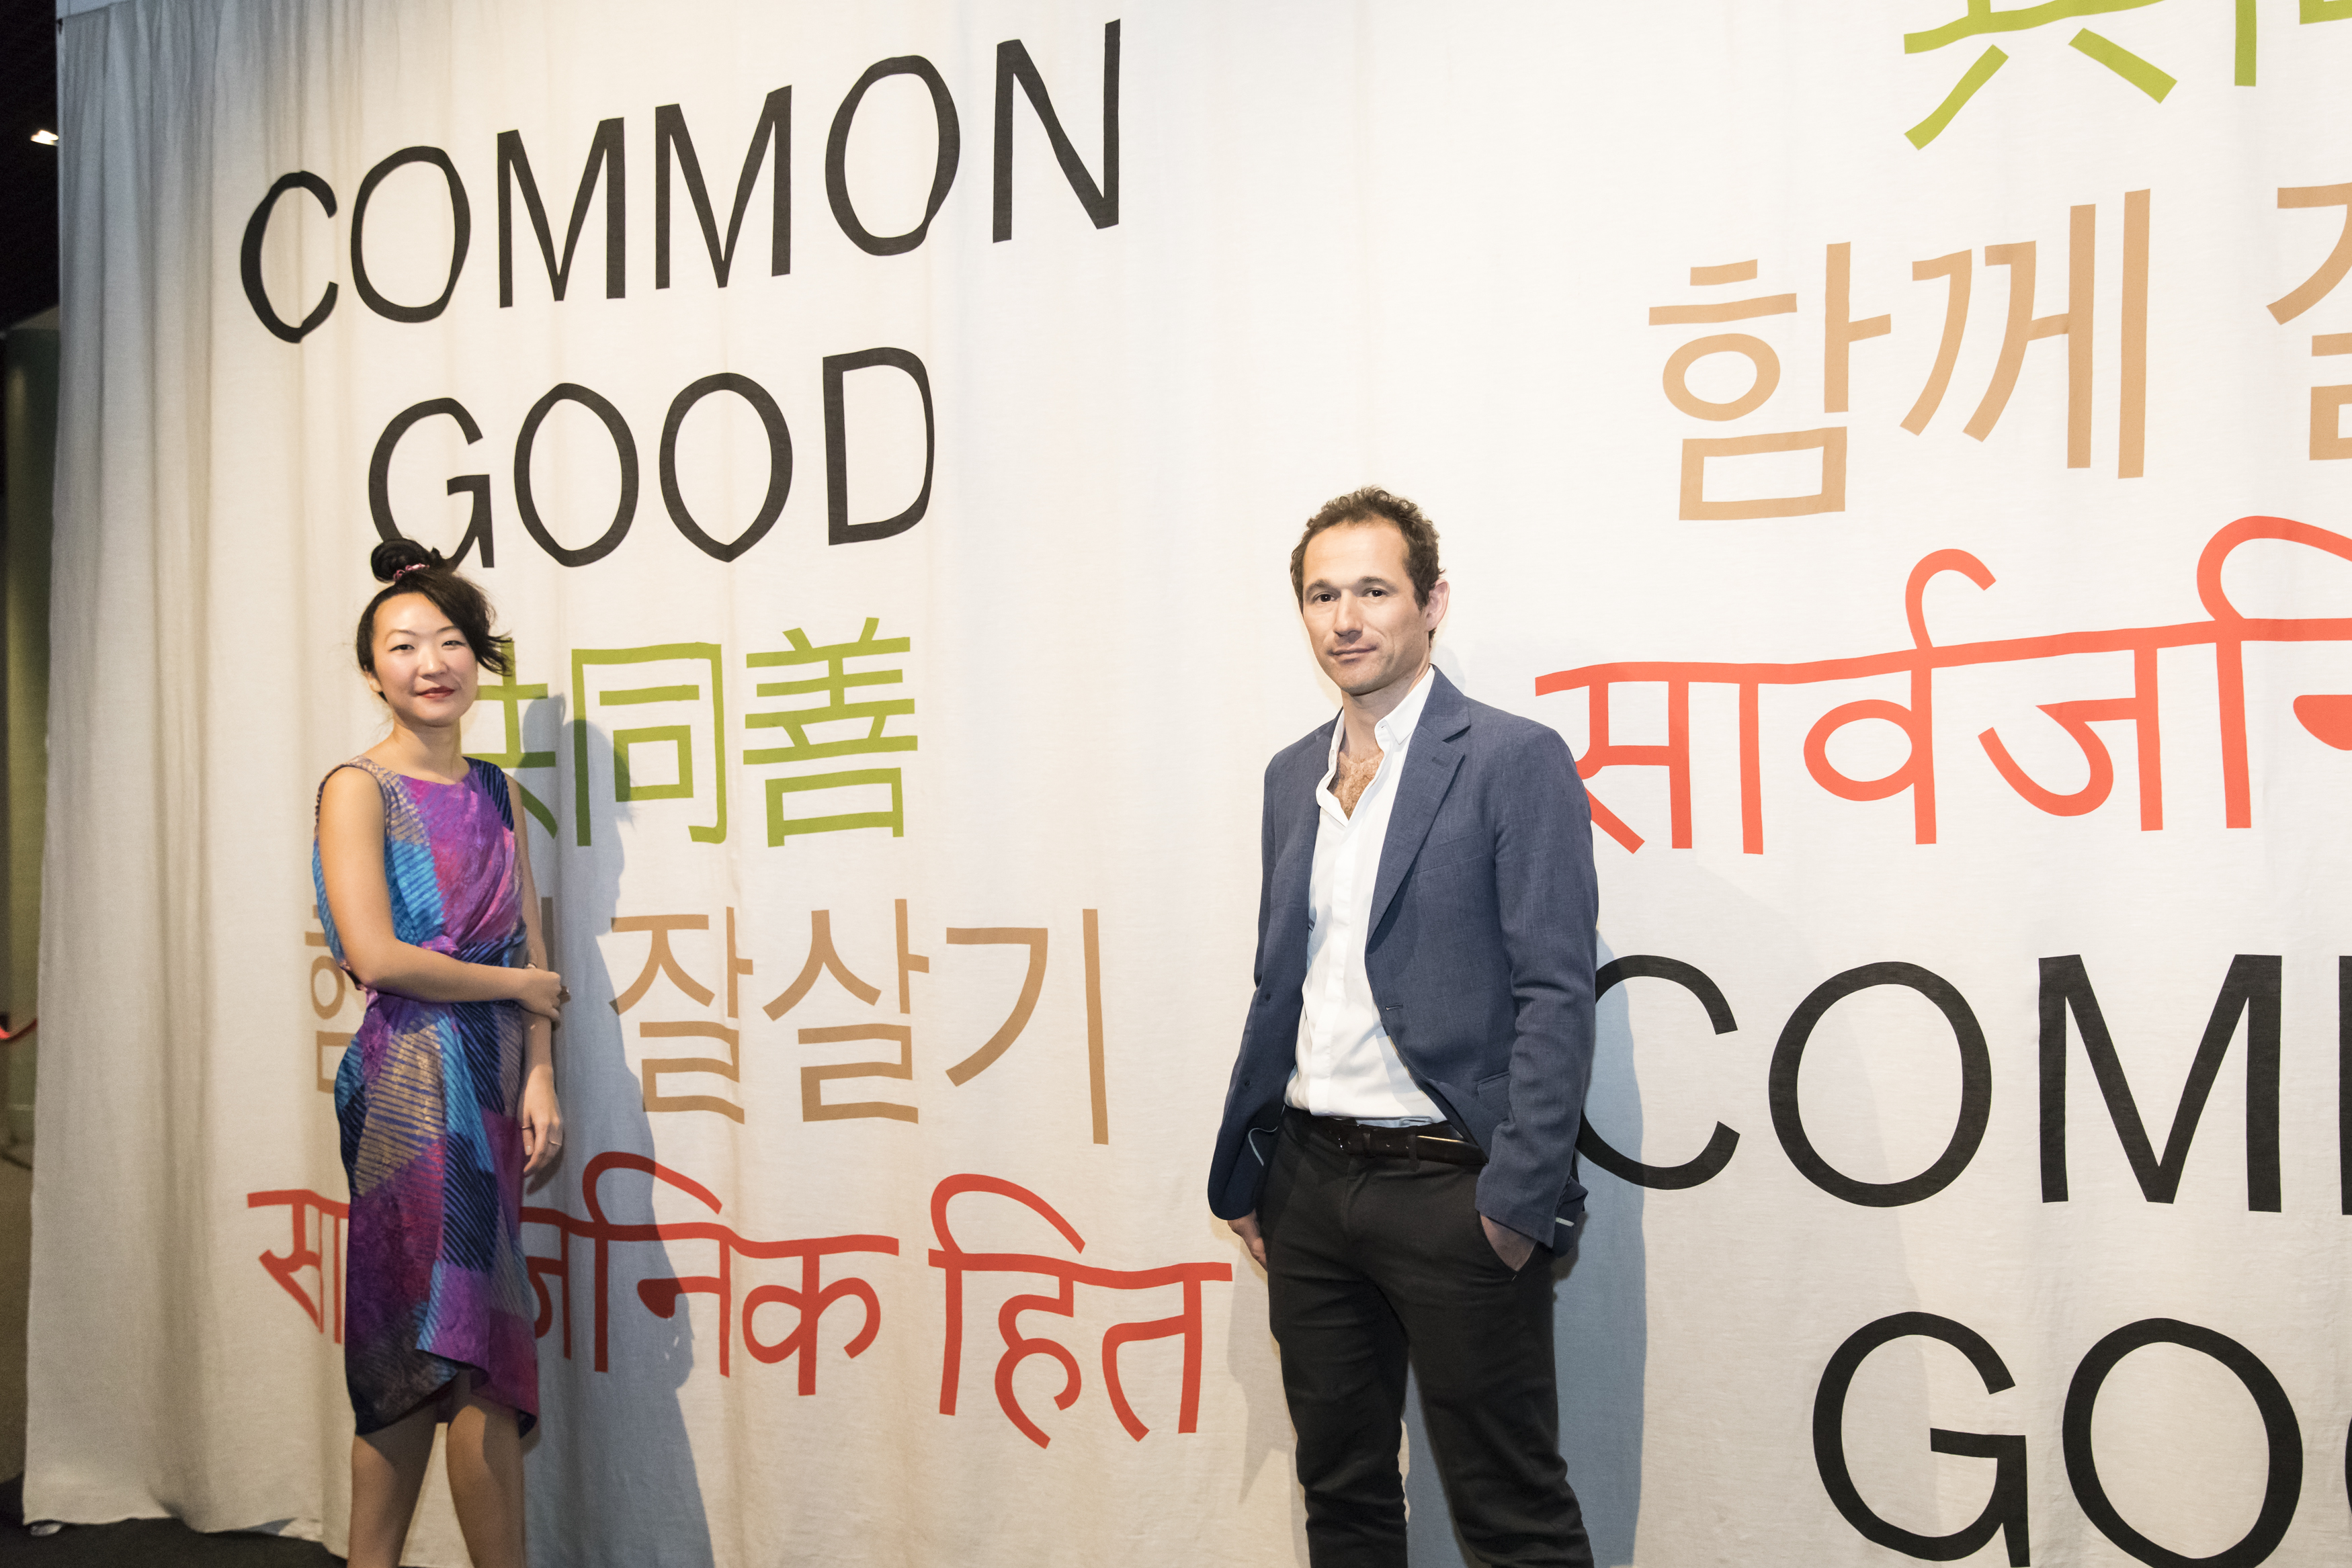 Man and woman posing in front of a curtain with Common Good written on it in various languages.